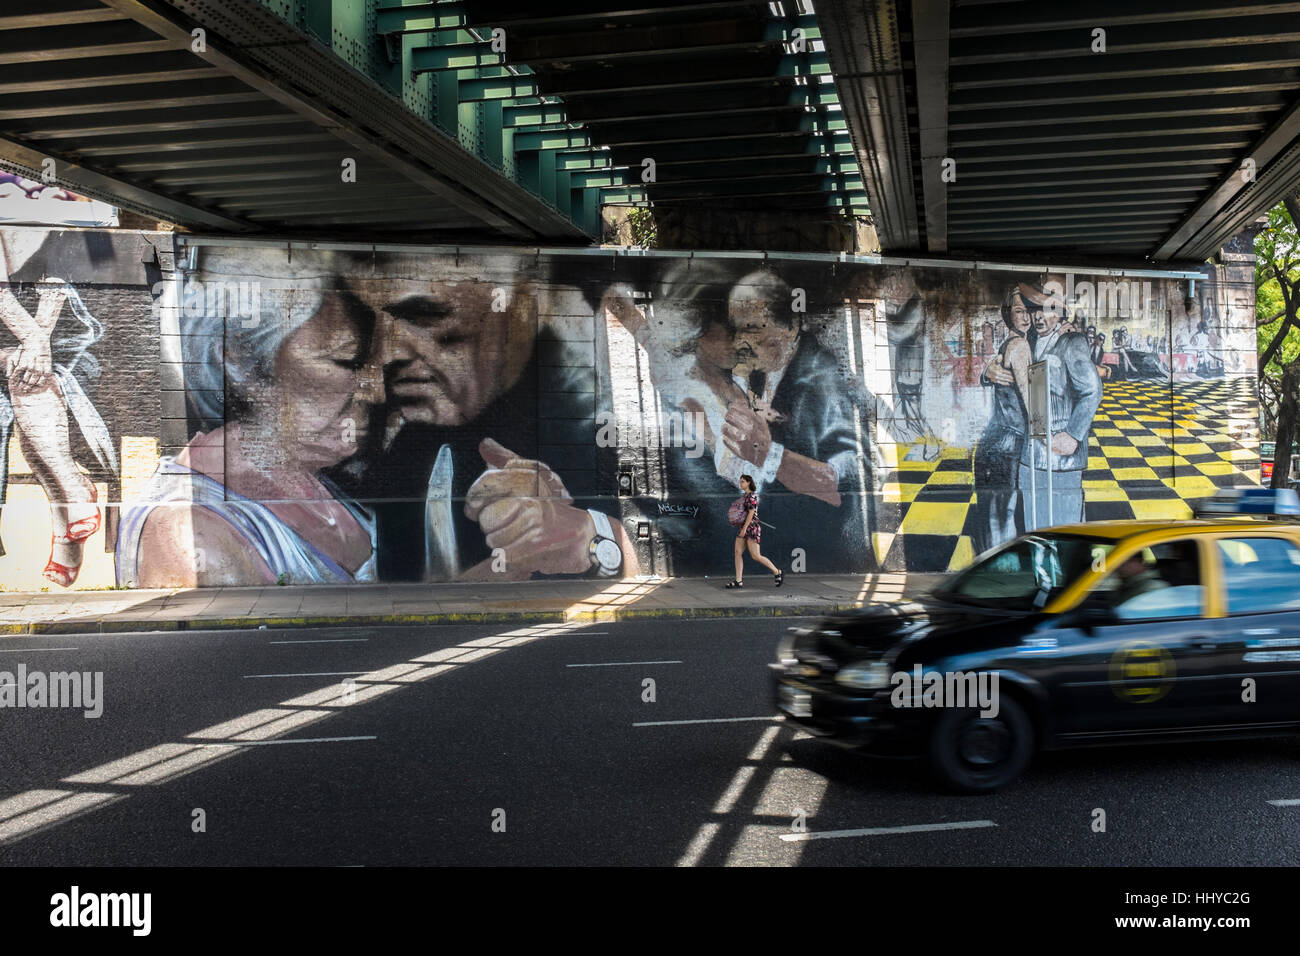 A taxi drives under a railway bridge where painted walls depict three couples dancing Tango in Buenos Aires city, - Stock Image